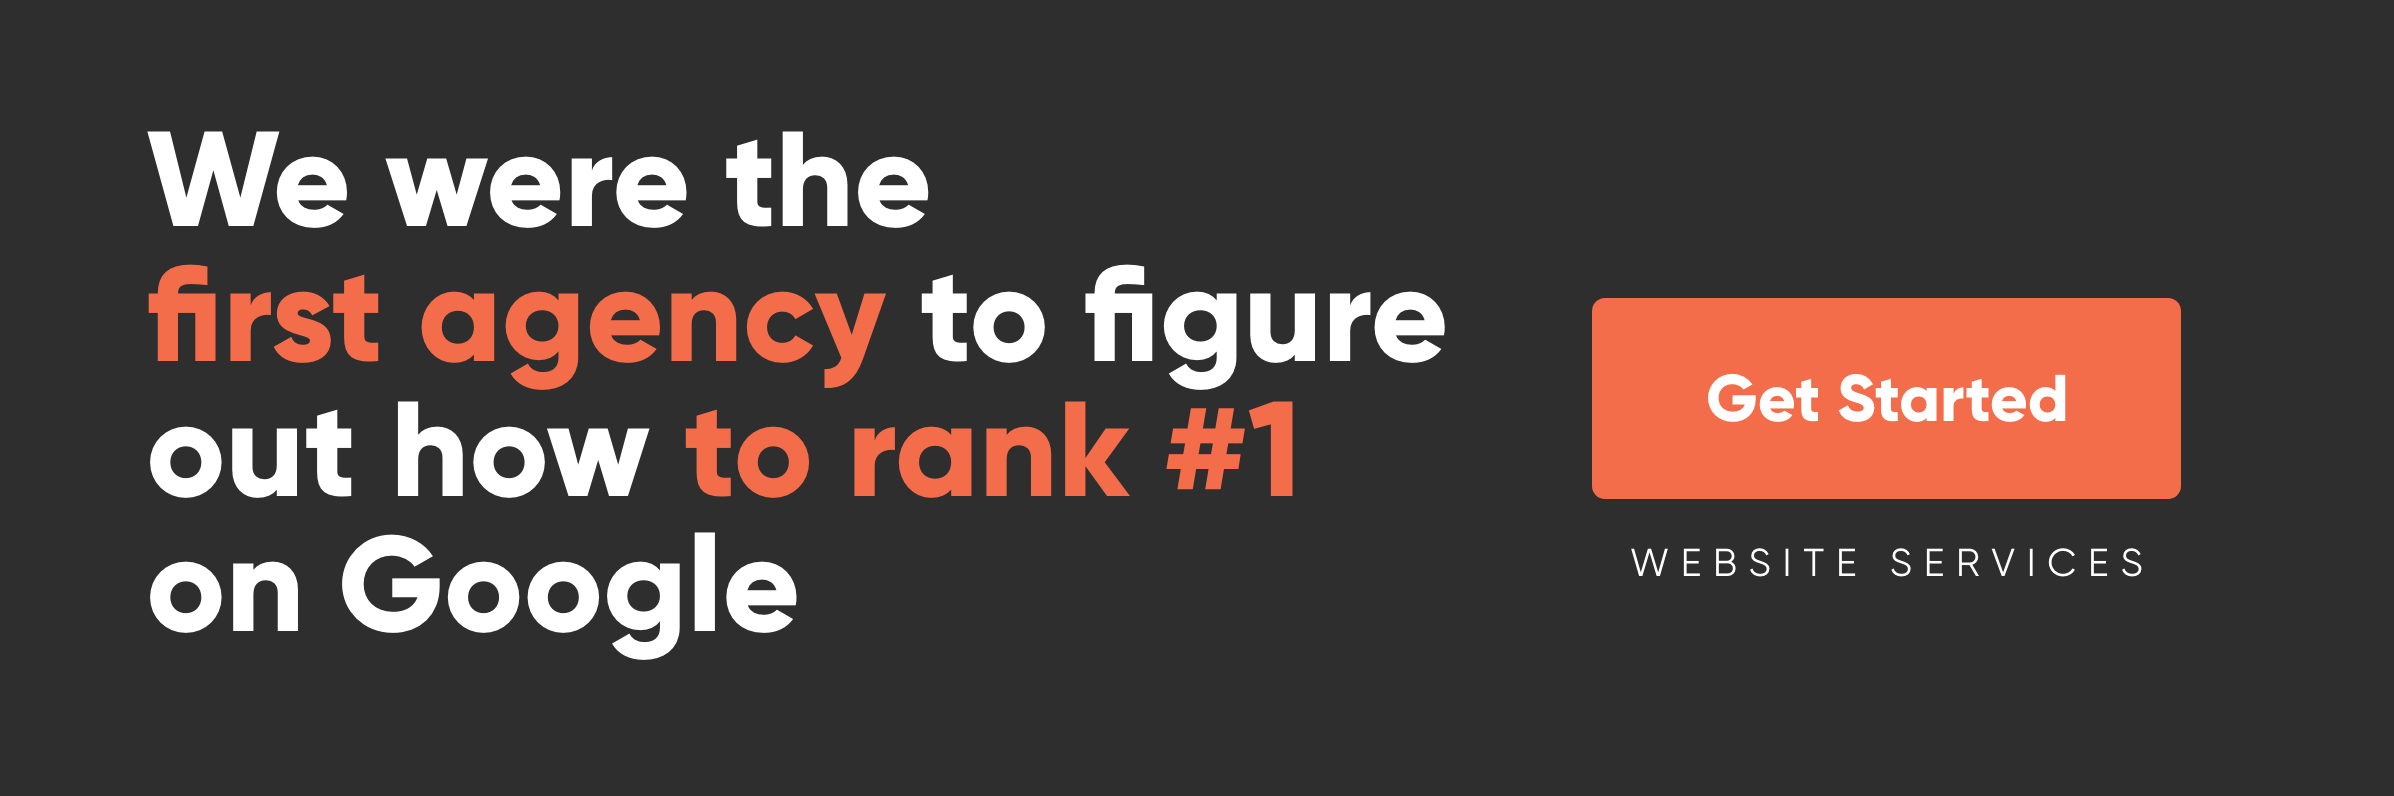 We were the first agency to figure out how to rank #1 on Google